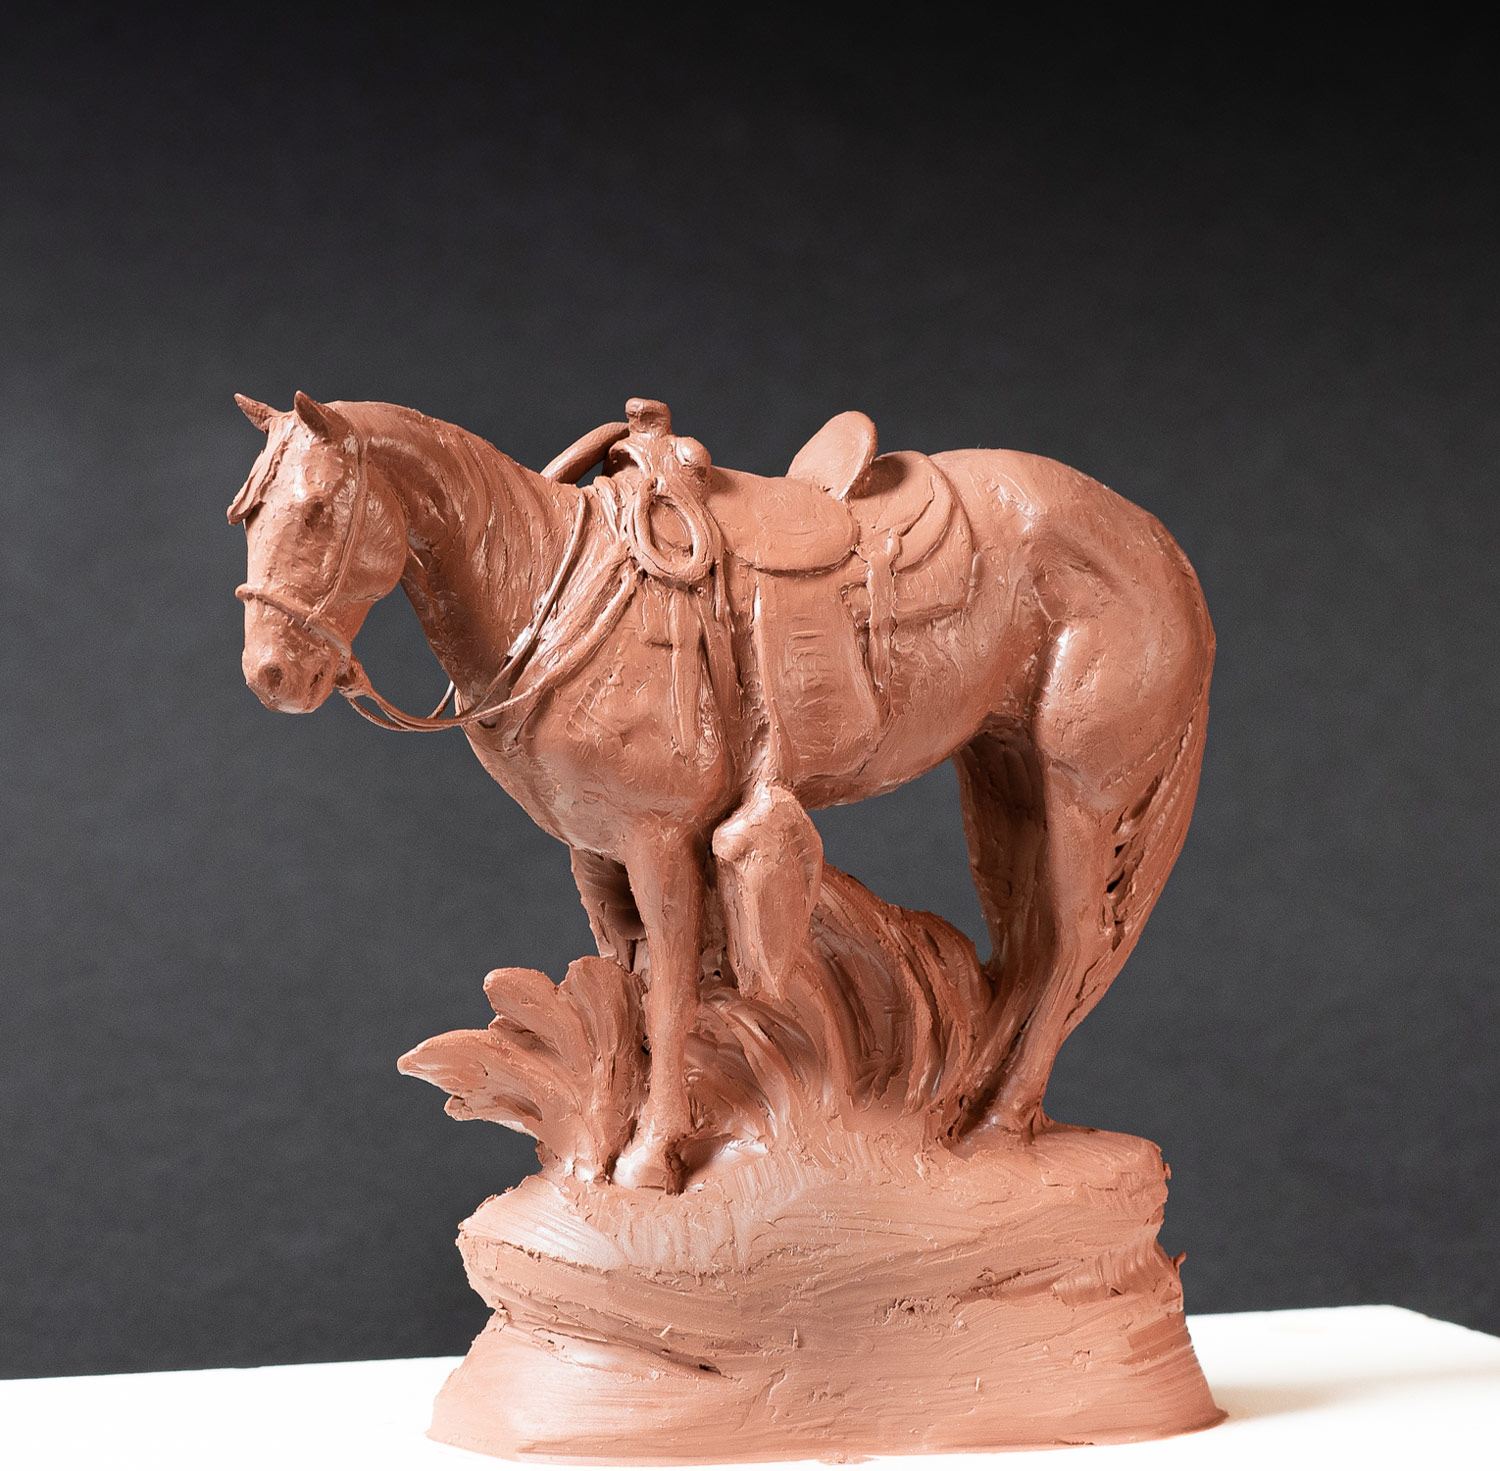 Pride of the Cavvietta will be available during the CAA Cowboy Trails Show online